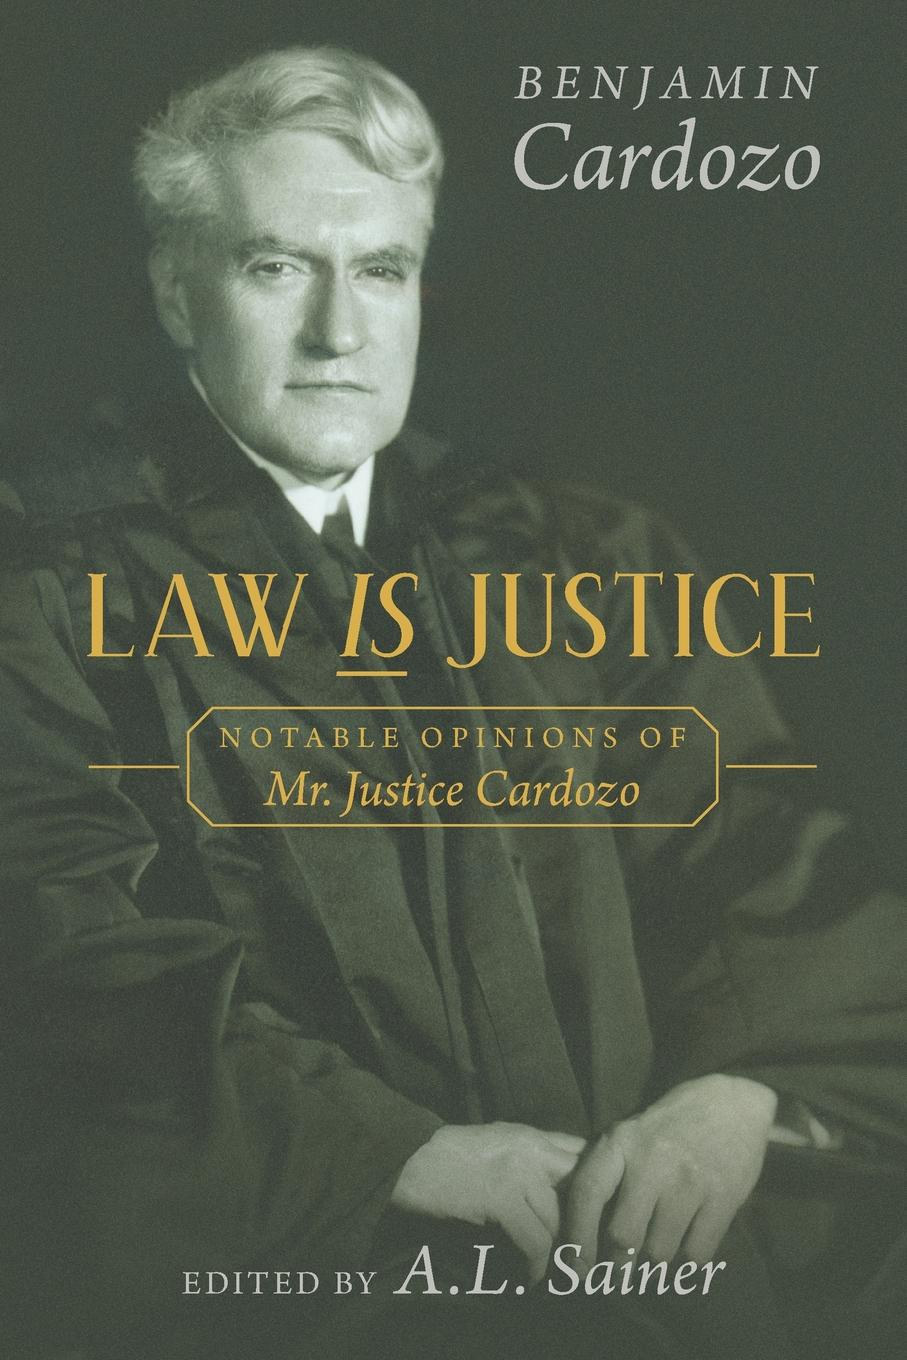 Benjamin Cardozo Law is Justice. Notable Opinions of Mr. Justice Cardozo edited by alison dunn the voluntary sector the state and the law